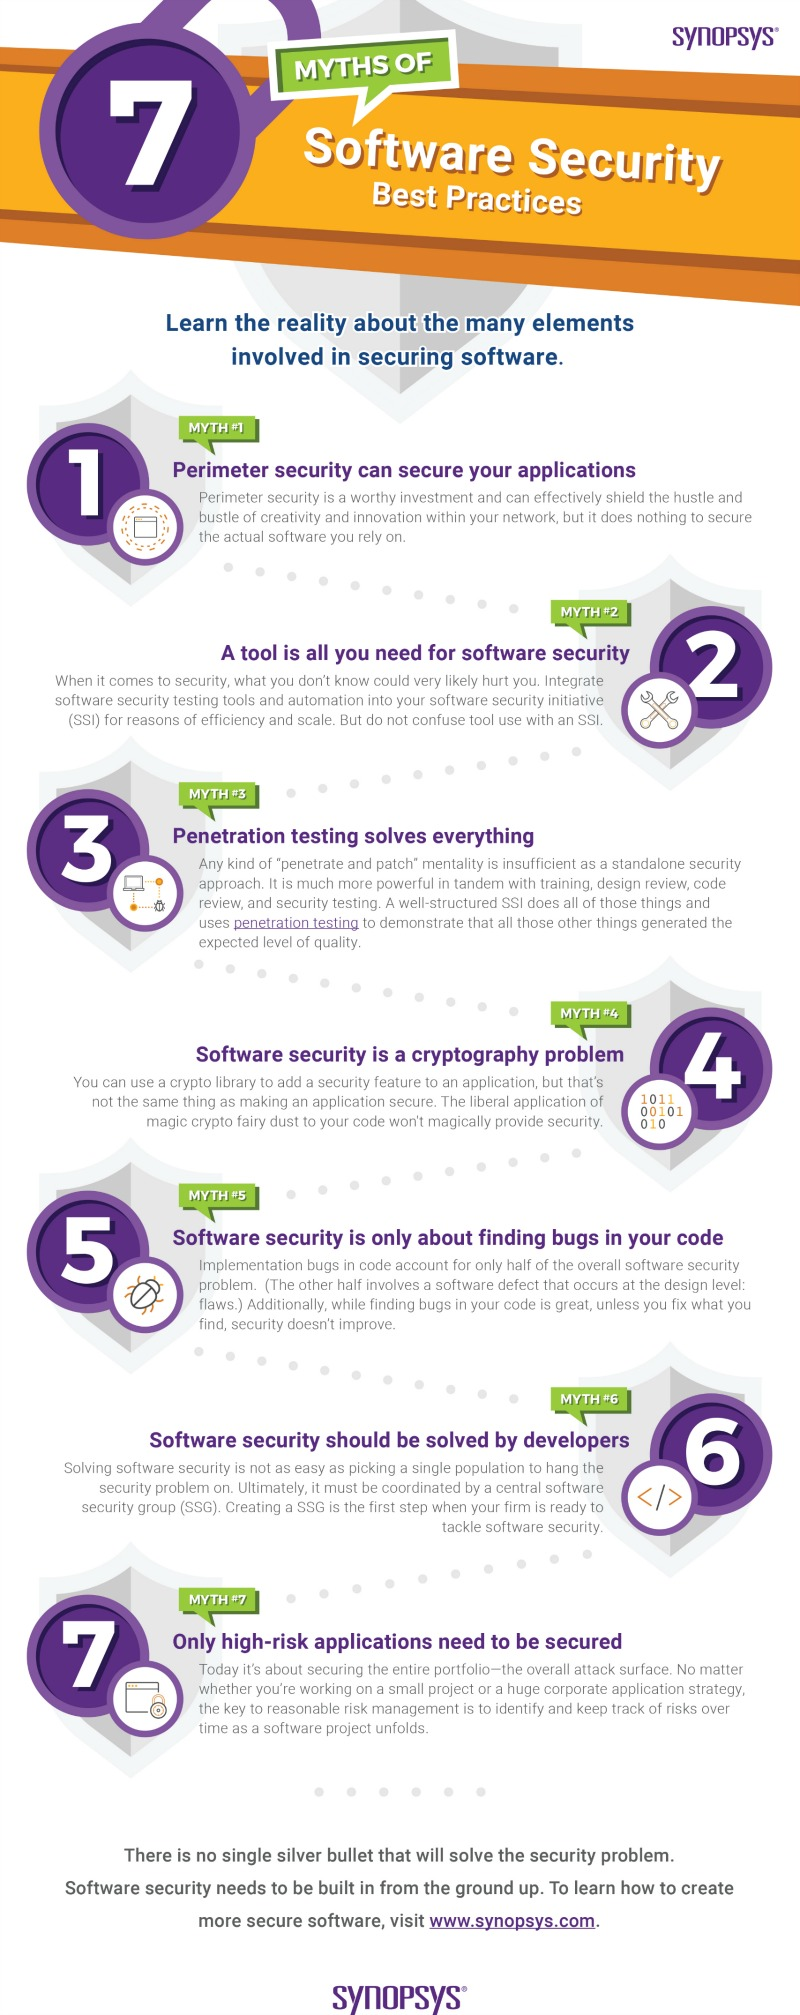 7 software security myths